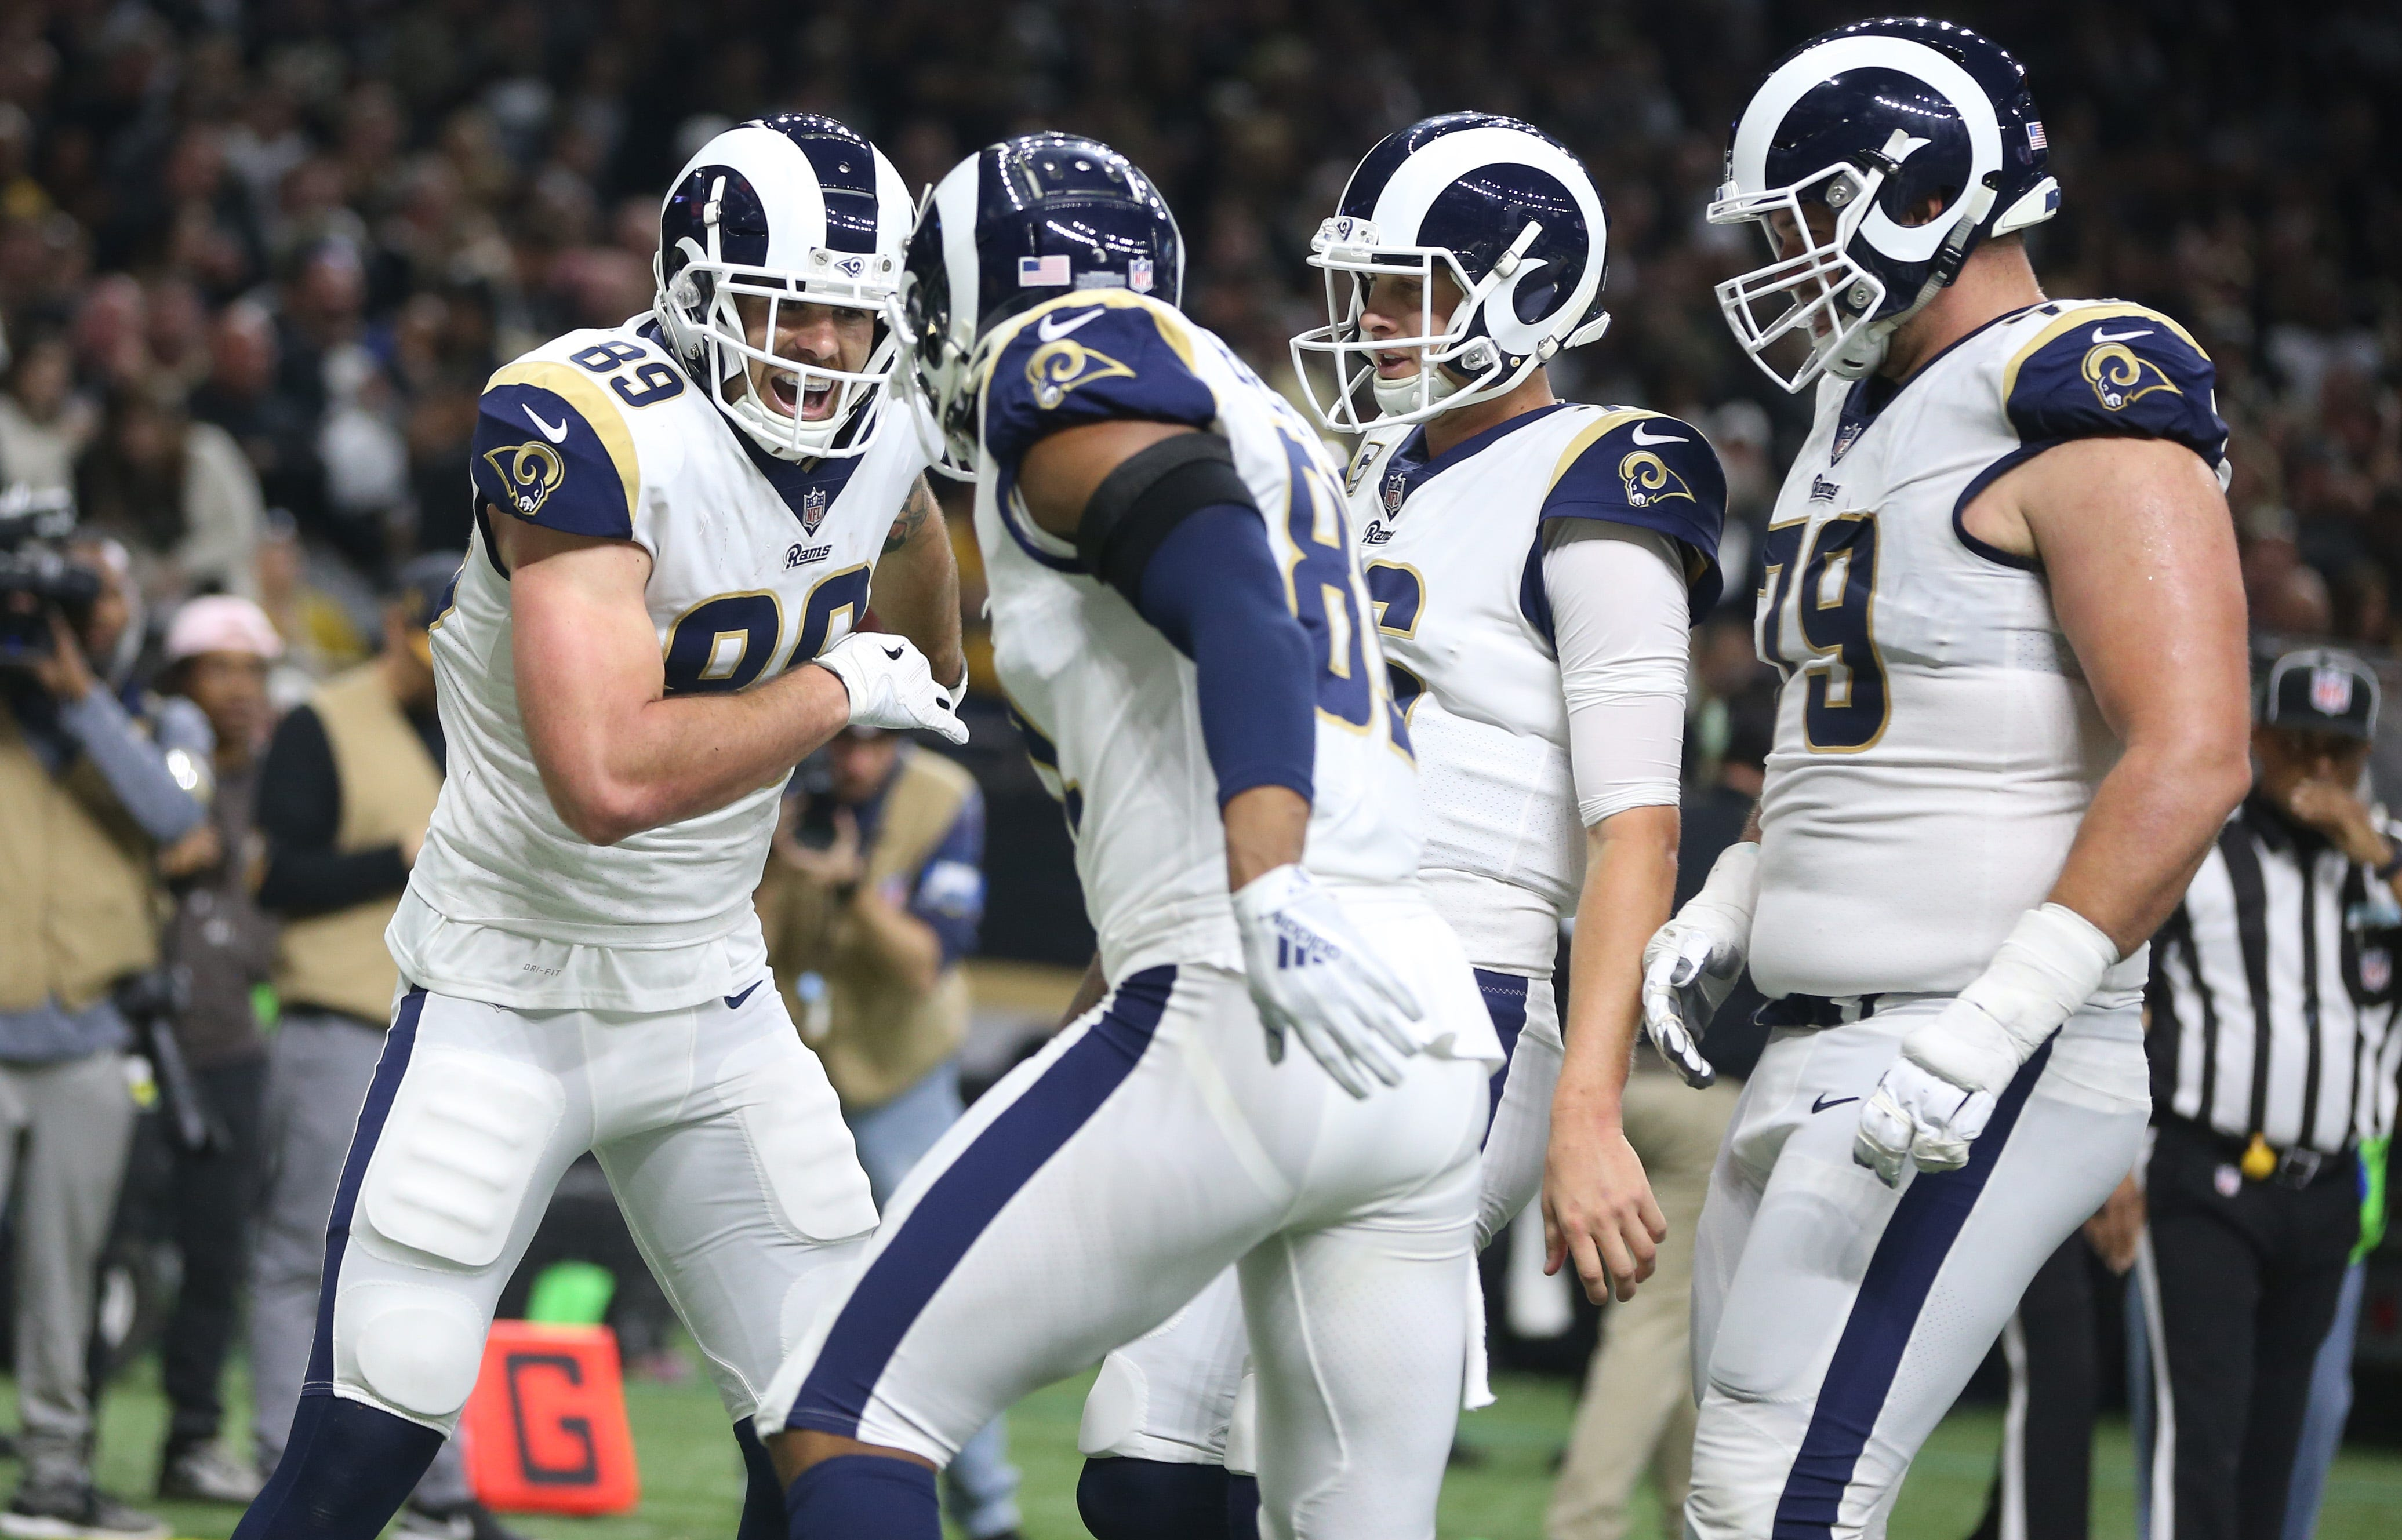 Rams stun Saints in overtime after controversial no-call, advance to Super Bowl LIII as NFC champs